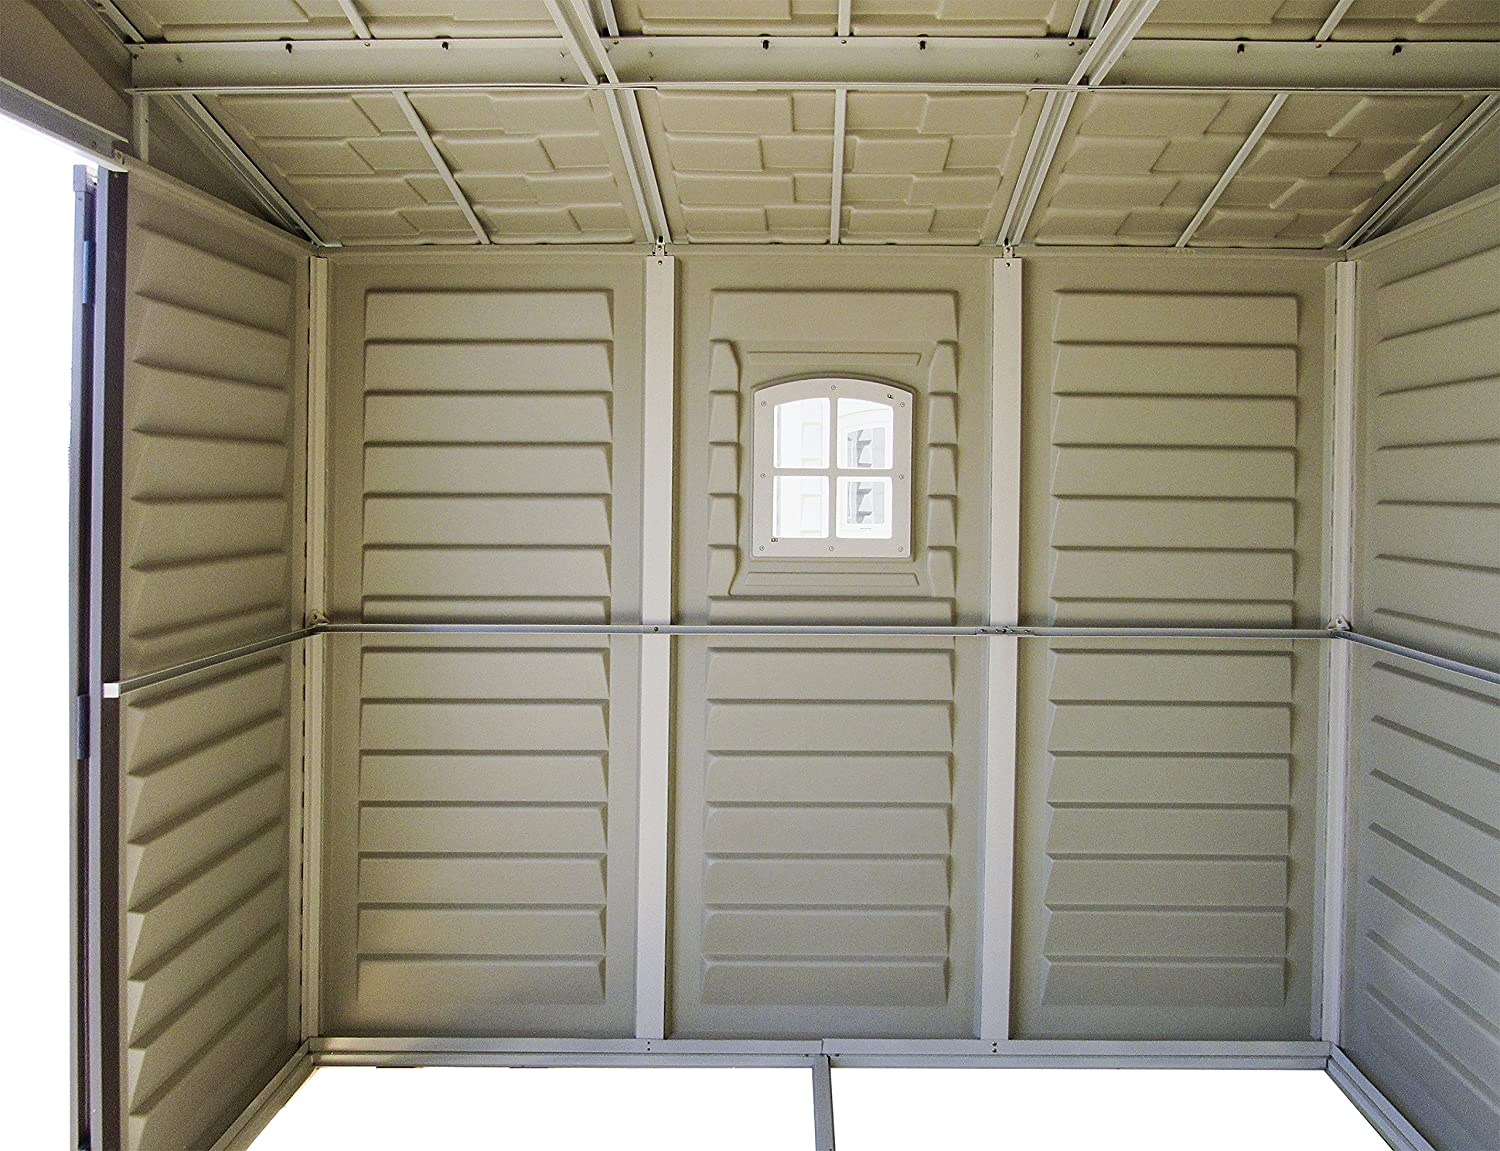 Duramax StorePro 4 x 6 Plastic Garden Shed with Plastic Floor /& Fixed Window 15 Years Warranty Ivory /& Brown